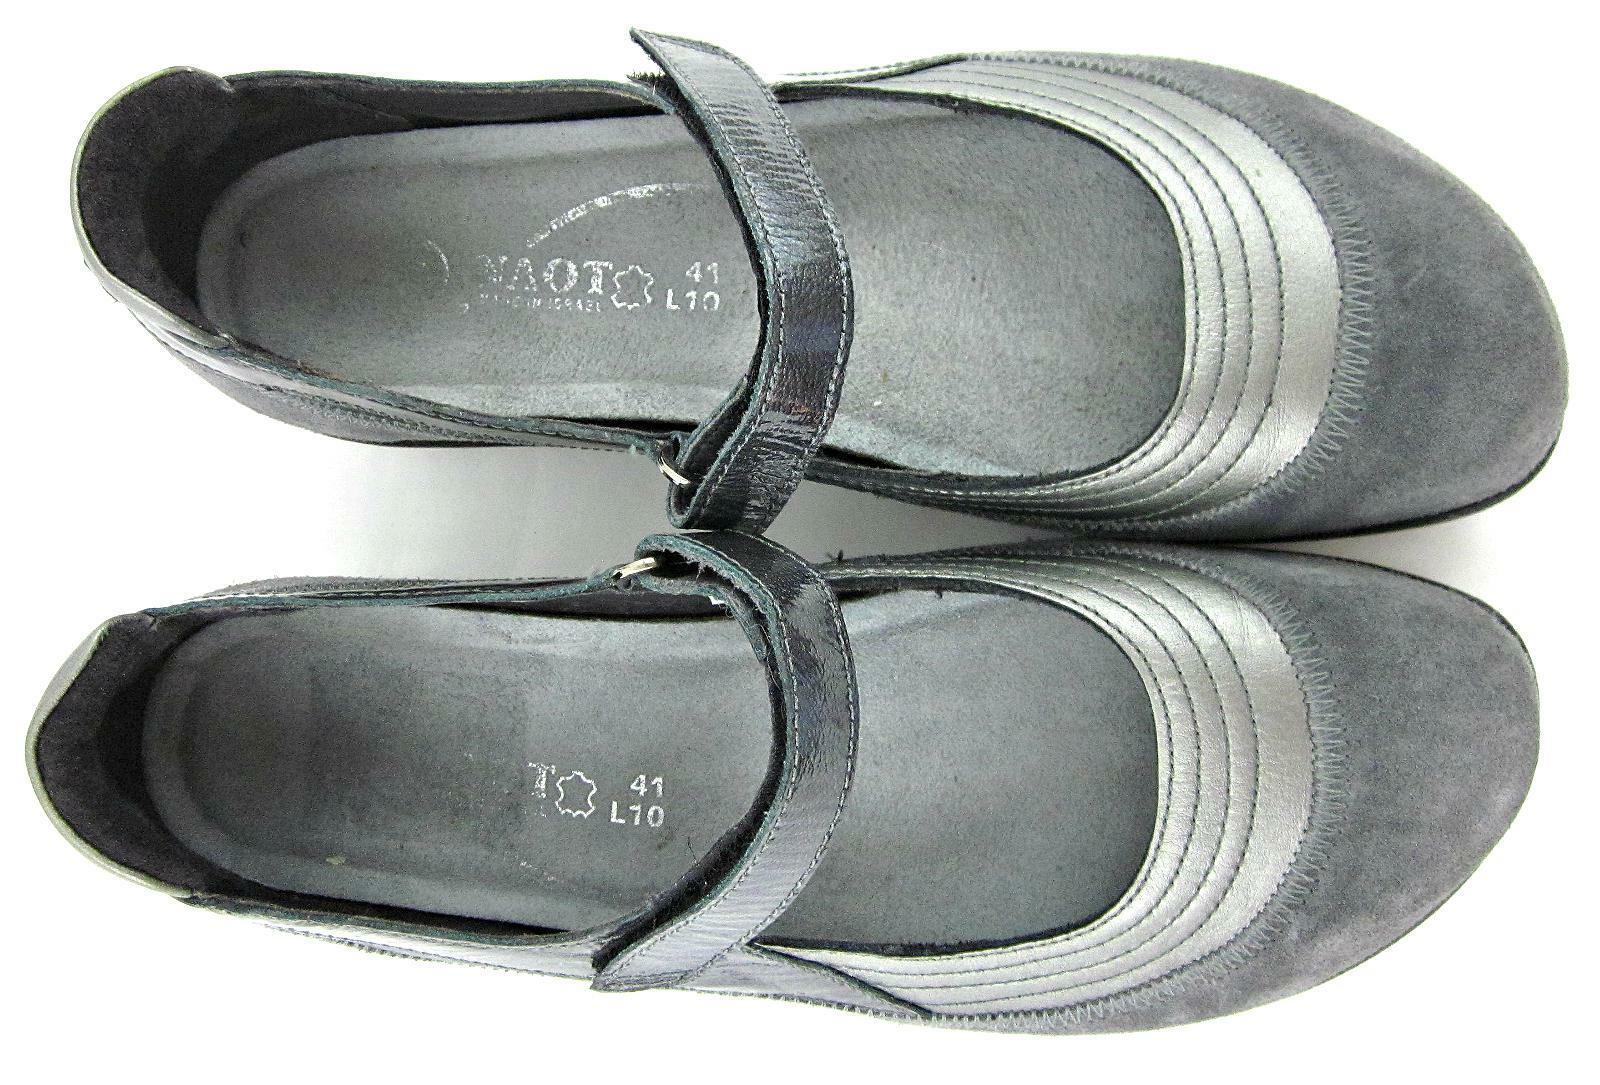 NAOT Sterling 'Kirei' Mary Jane Schuhes Sterling NAOT Gray Leder Sz US 10 Worn Once 999be5